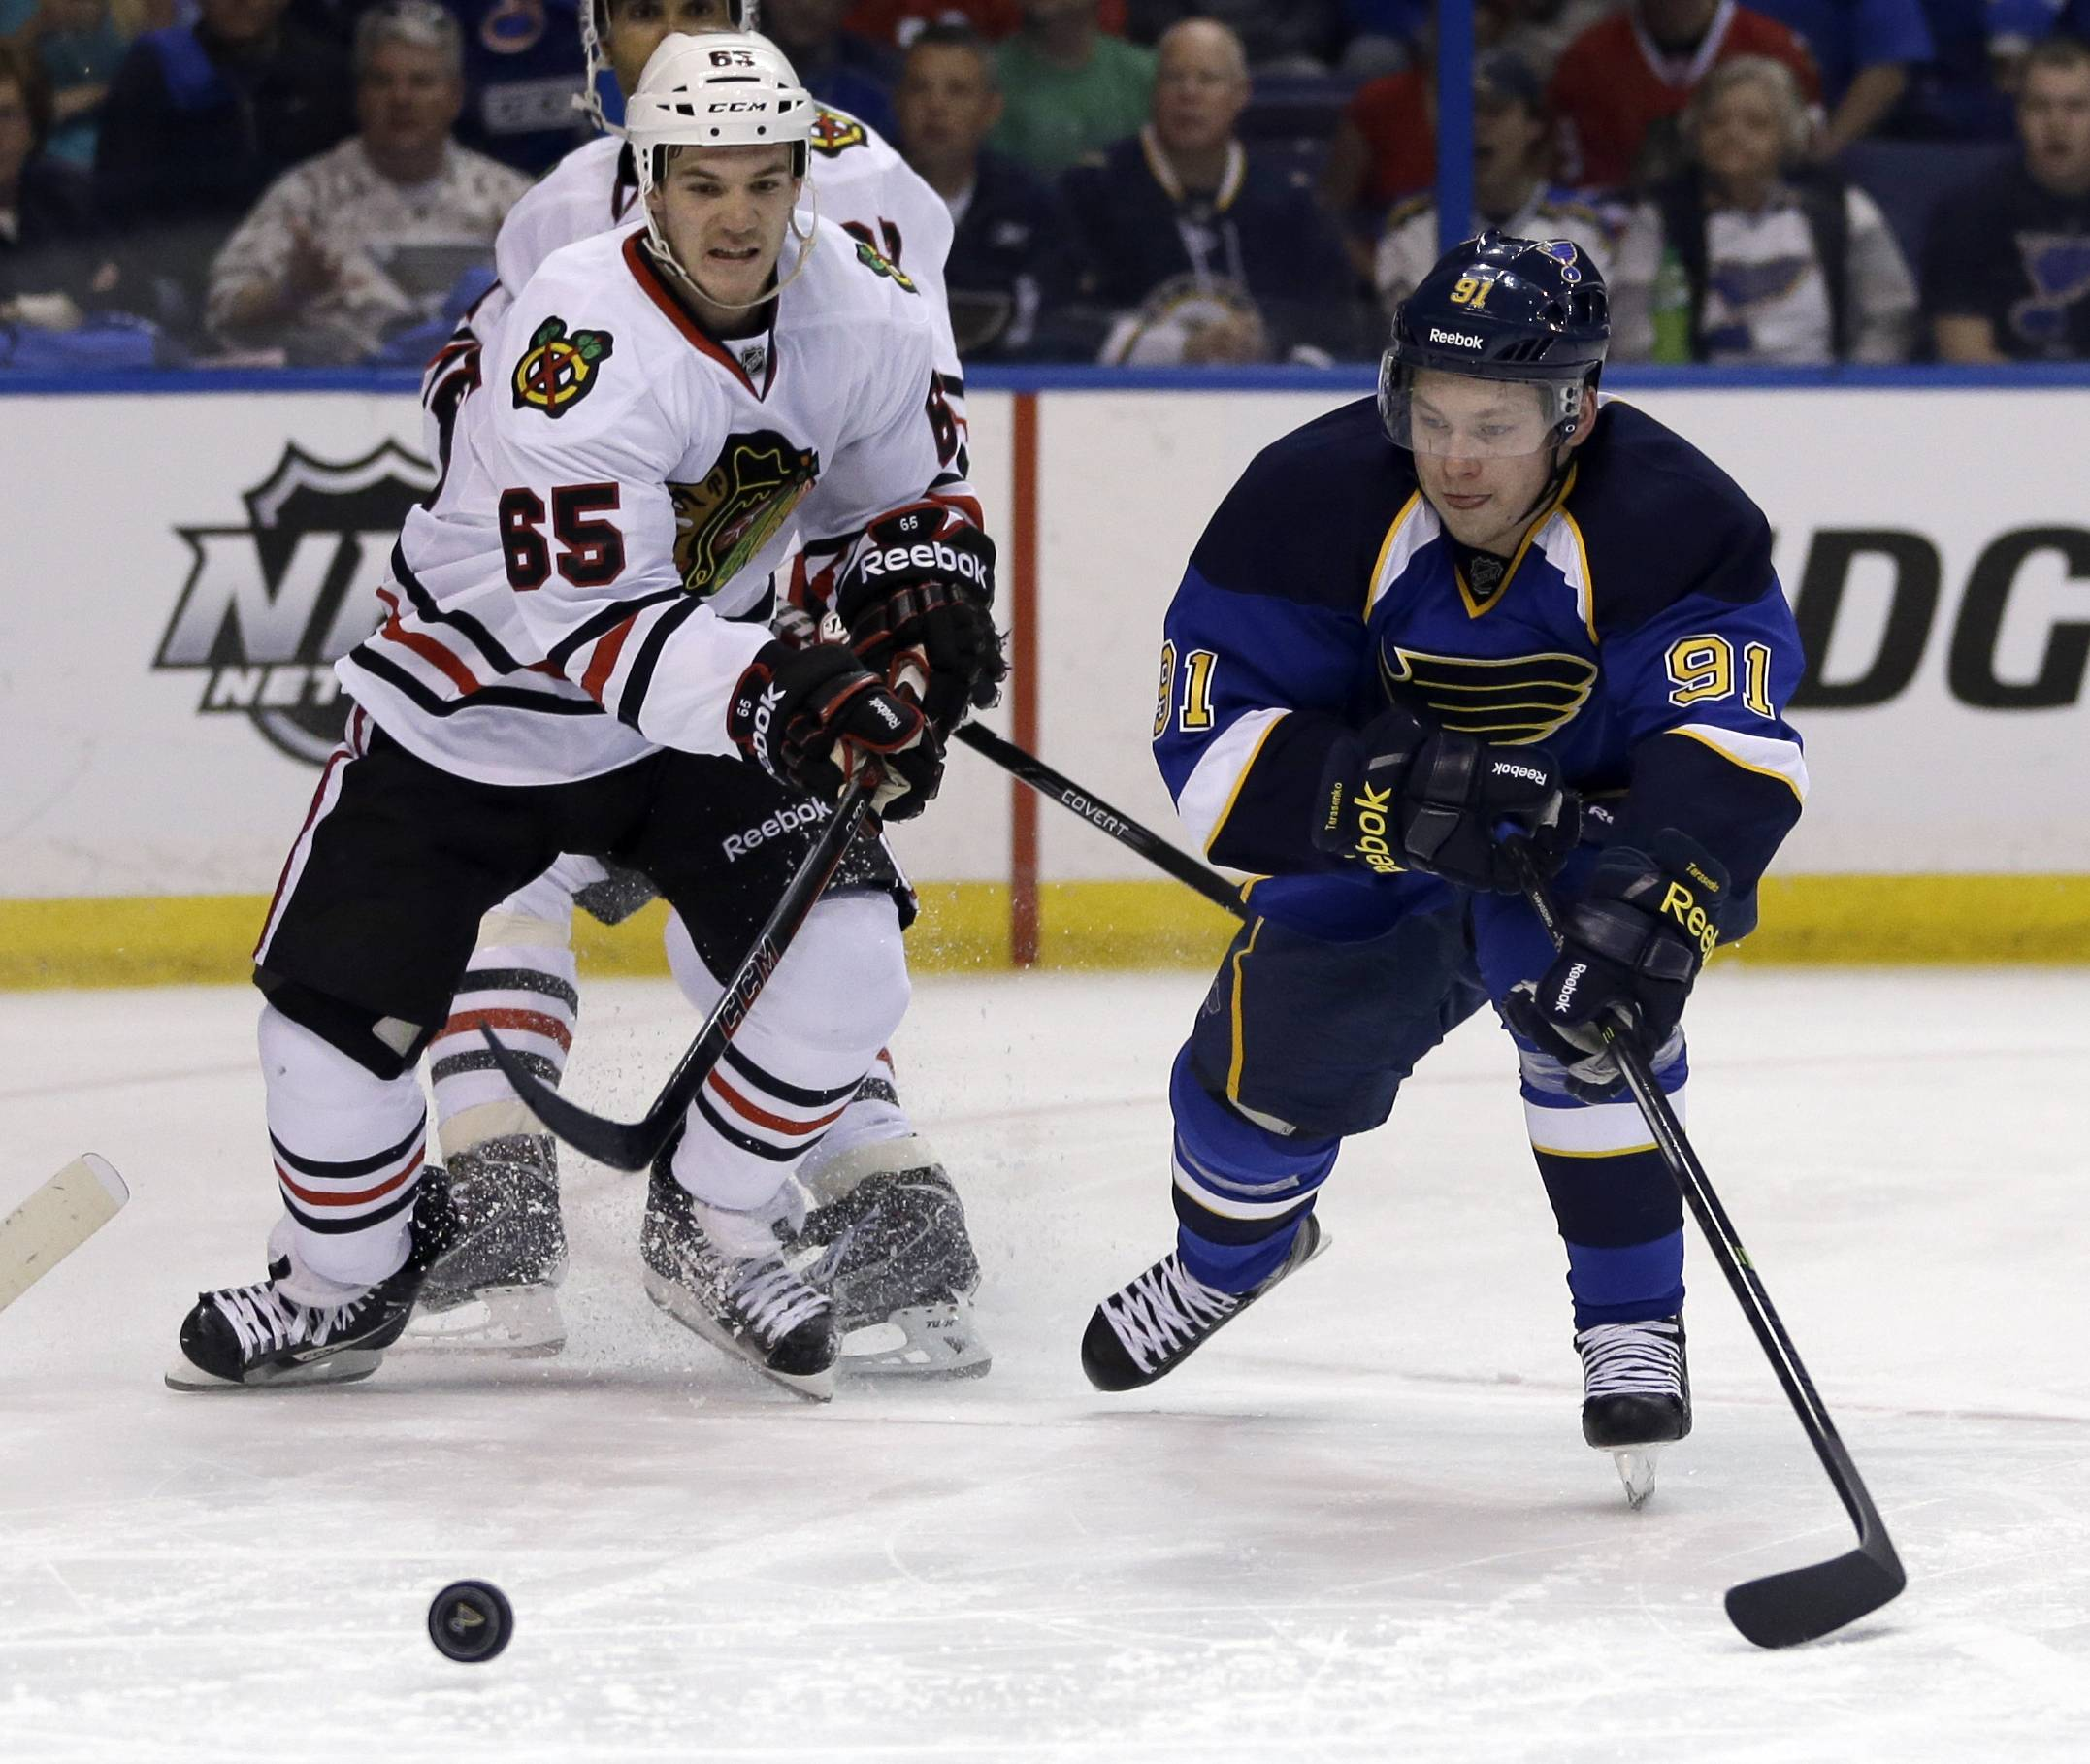 Chicago Blackhawks' Andrew Shaw, left, and St. Louis Blues' Vladimir Tarasenko chase a loose puck during the second period.